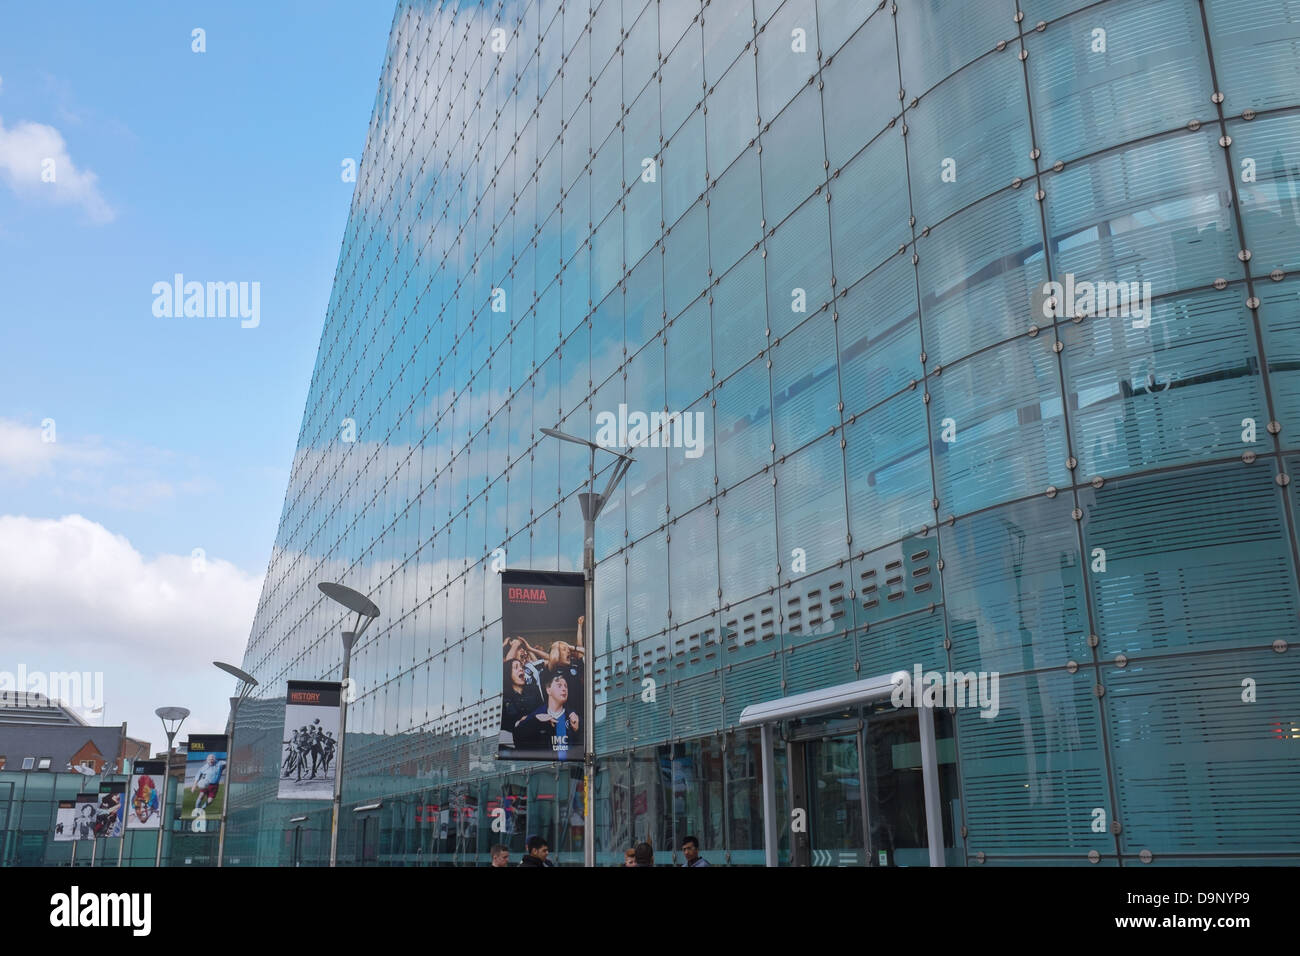 National Football Museum at Urbis in Manchester city centre, UK - Stock Image